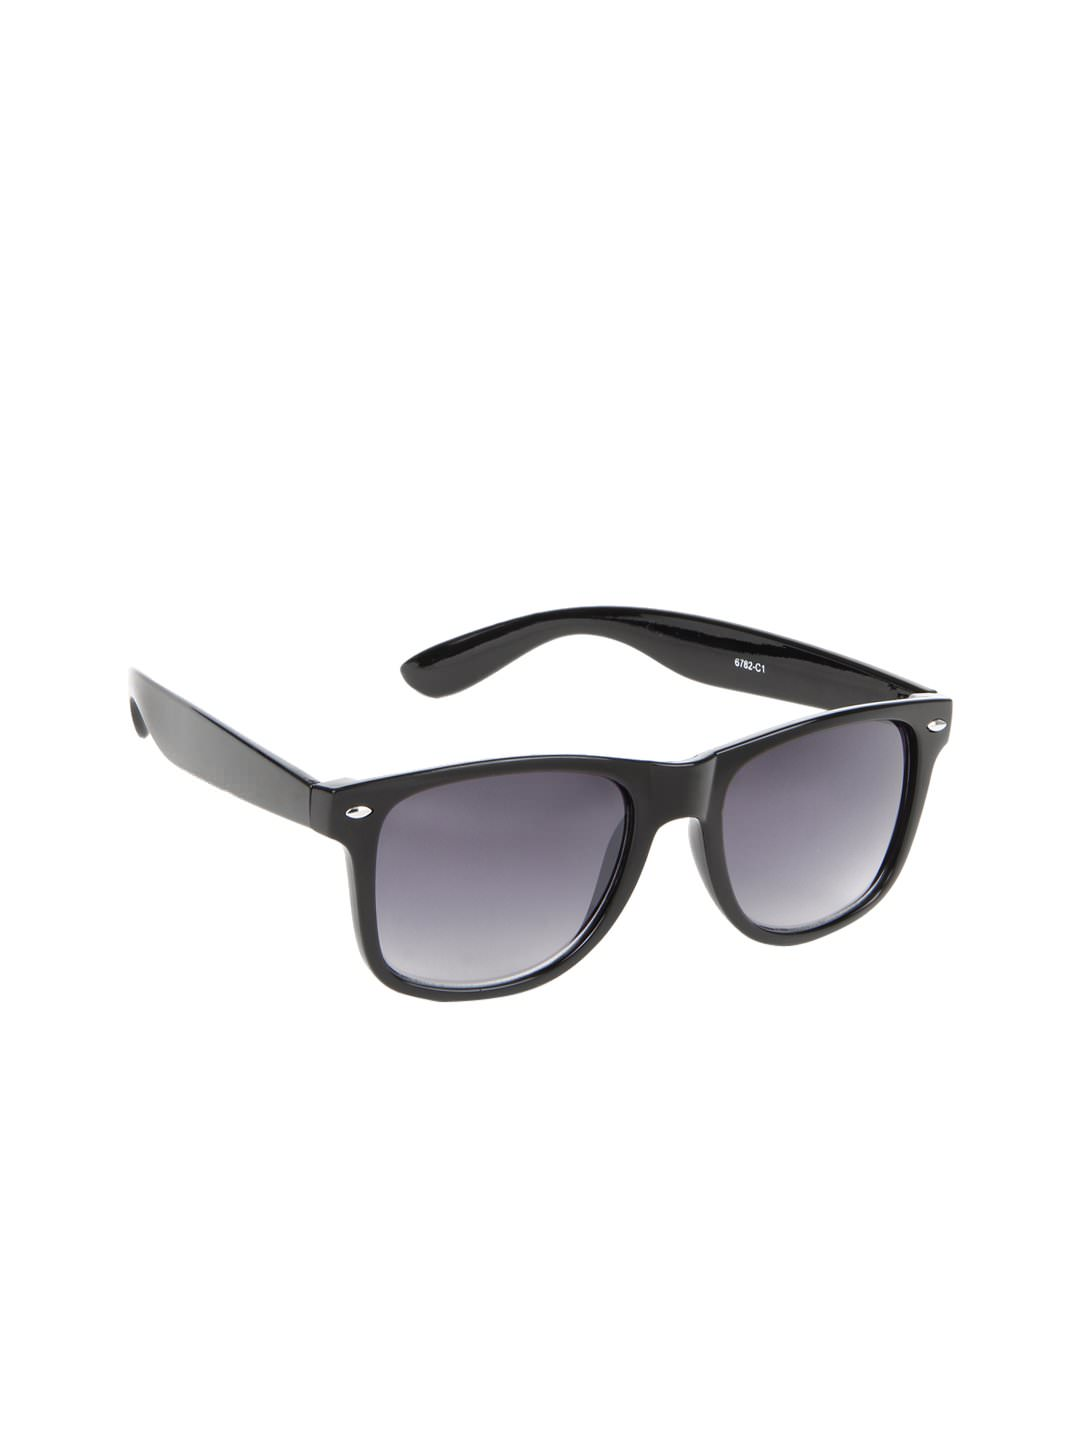 Trends Unisex Sunglasses at Rs.1350